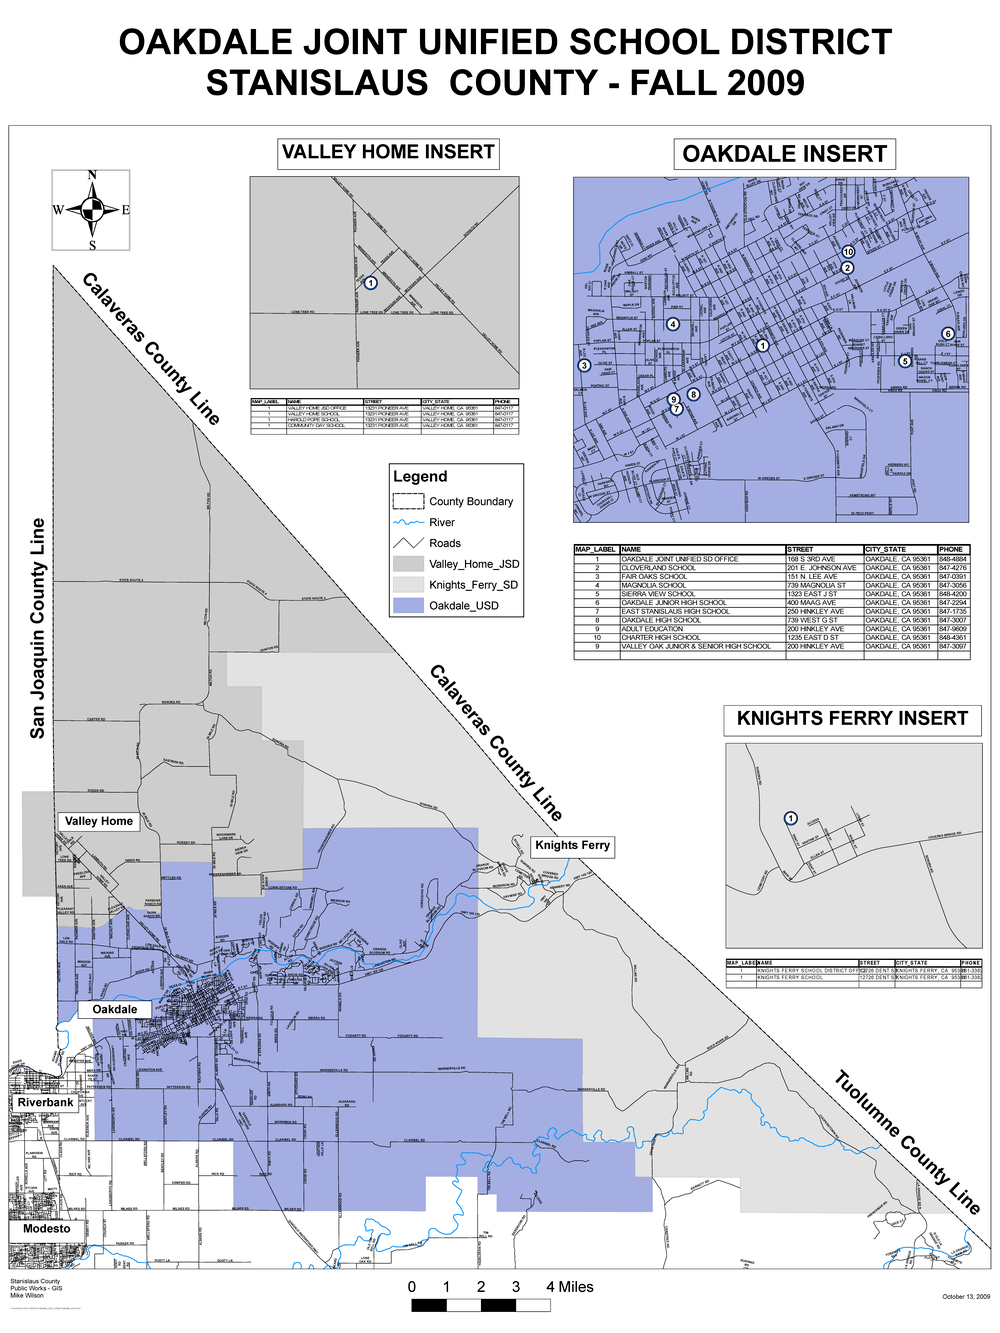 District Boundaries